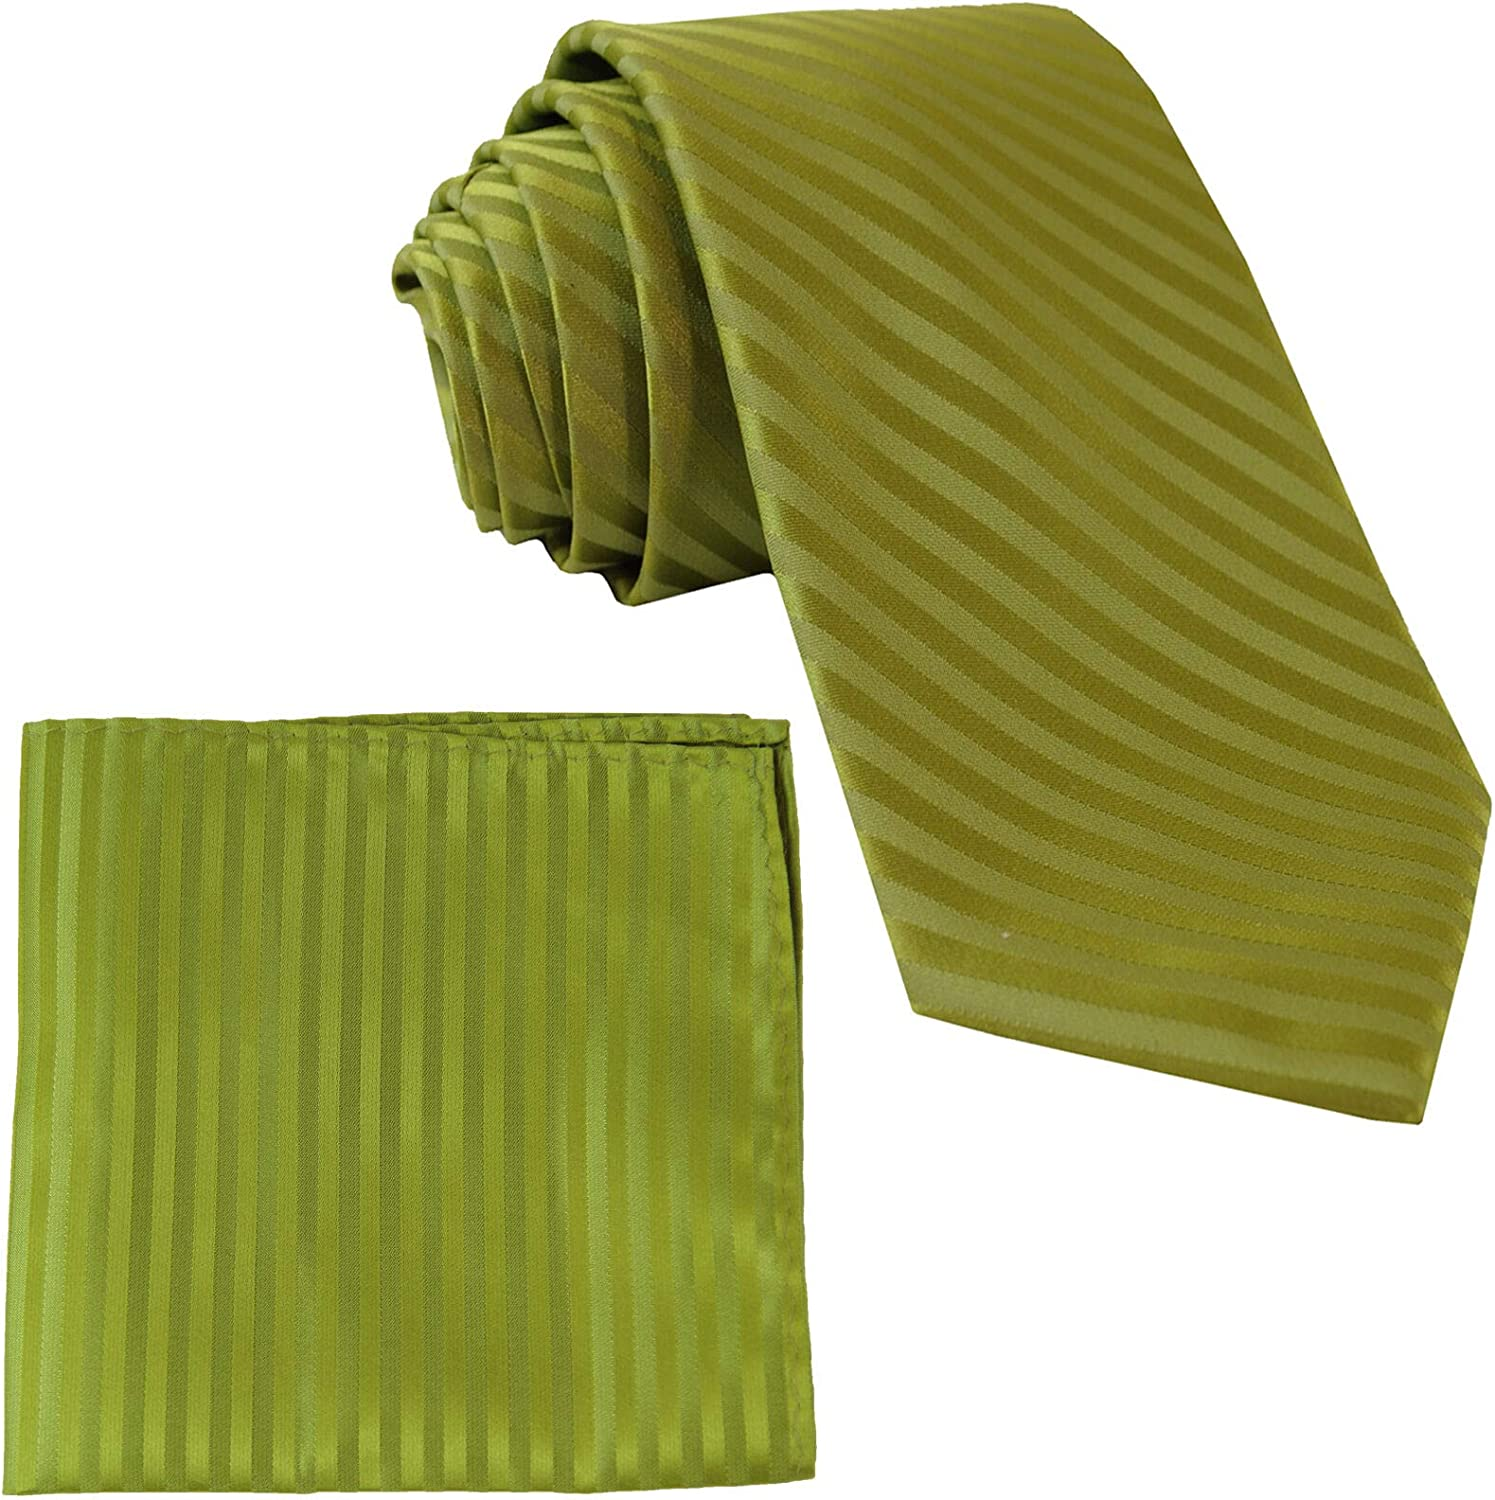 Polyester Mens Striped Spinach Green Necktie With Pocket Square Set for Men Woven Skinny Suit Tie with Handkerchief for Wedding Birthday Party